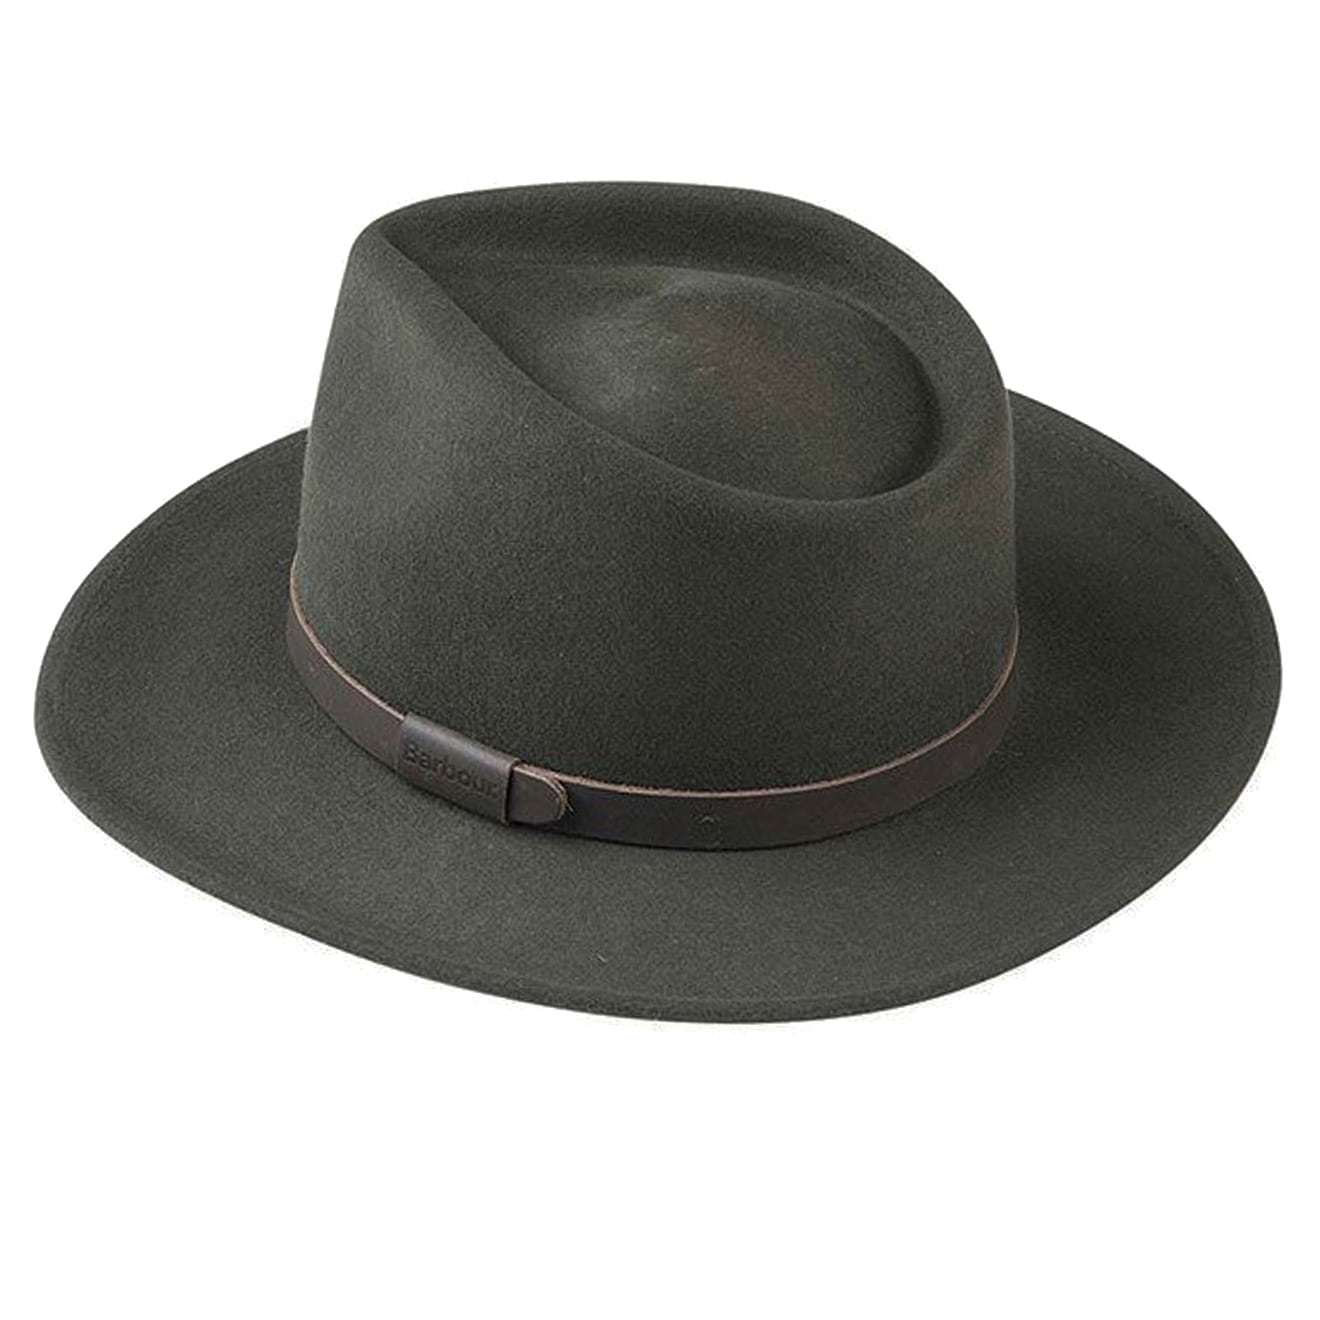 Barbour Crushable Bushman Fedora Hat Olive